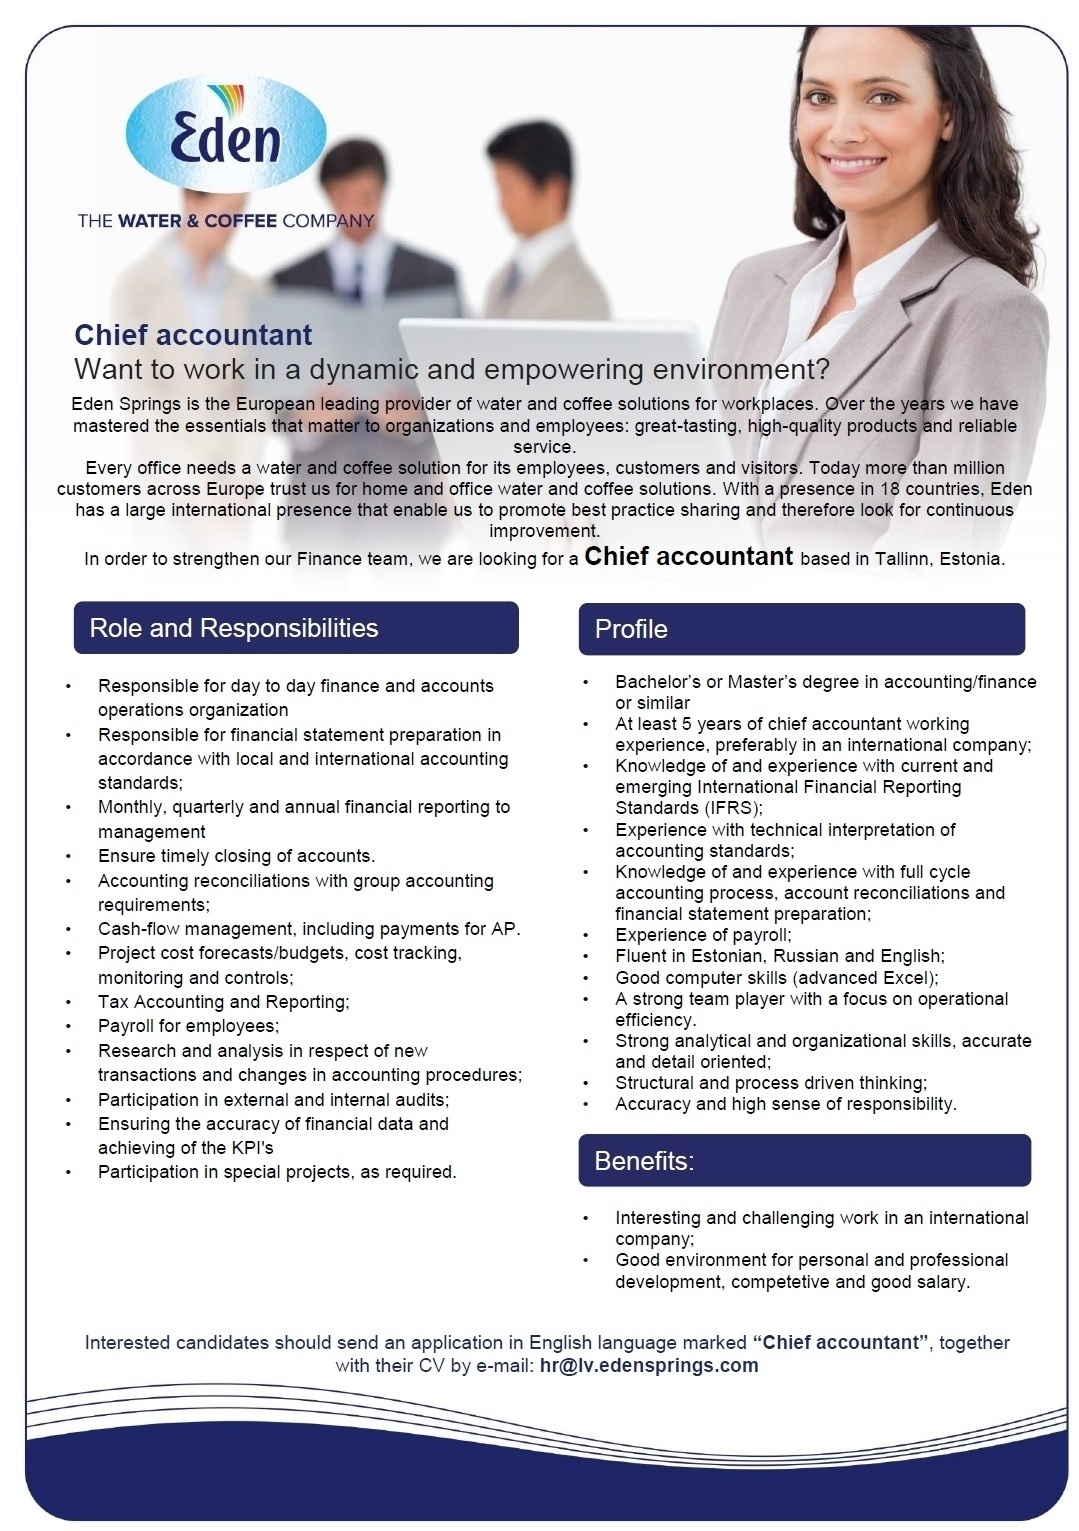 CV Market´s client Chief Accountant